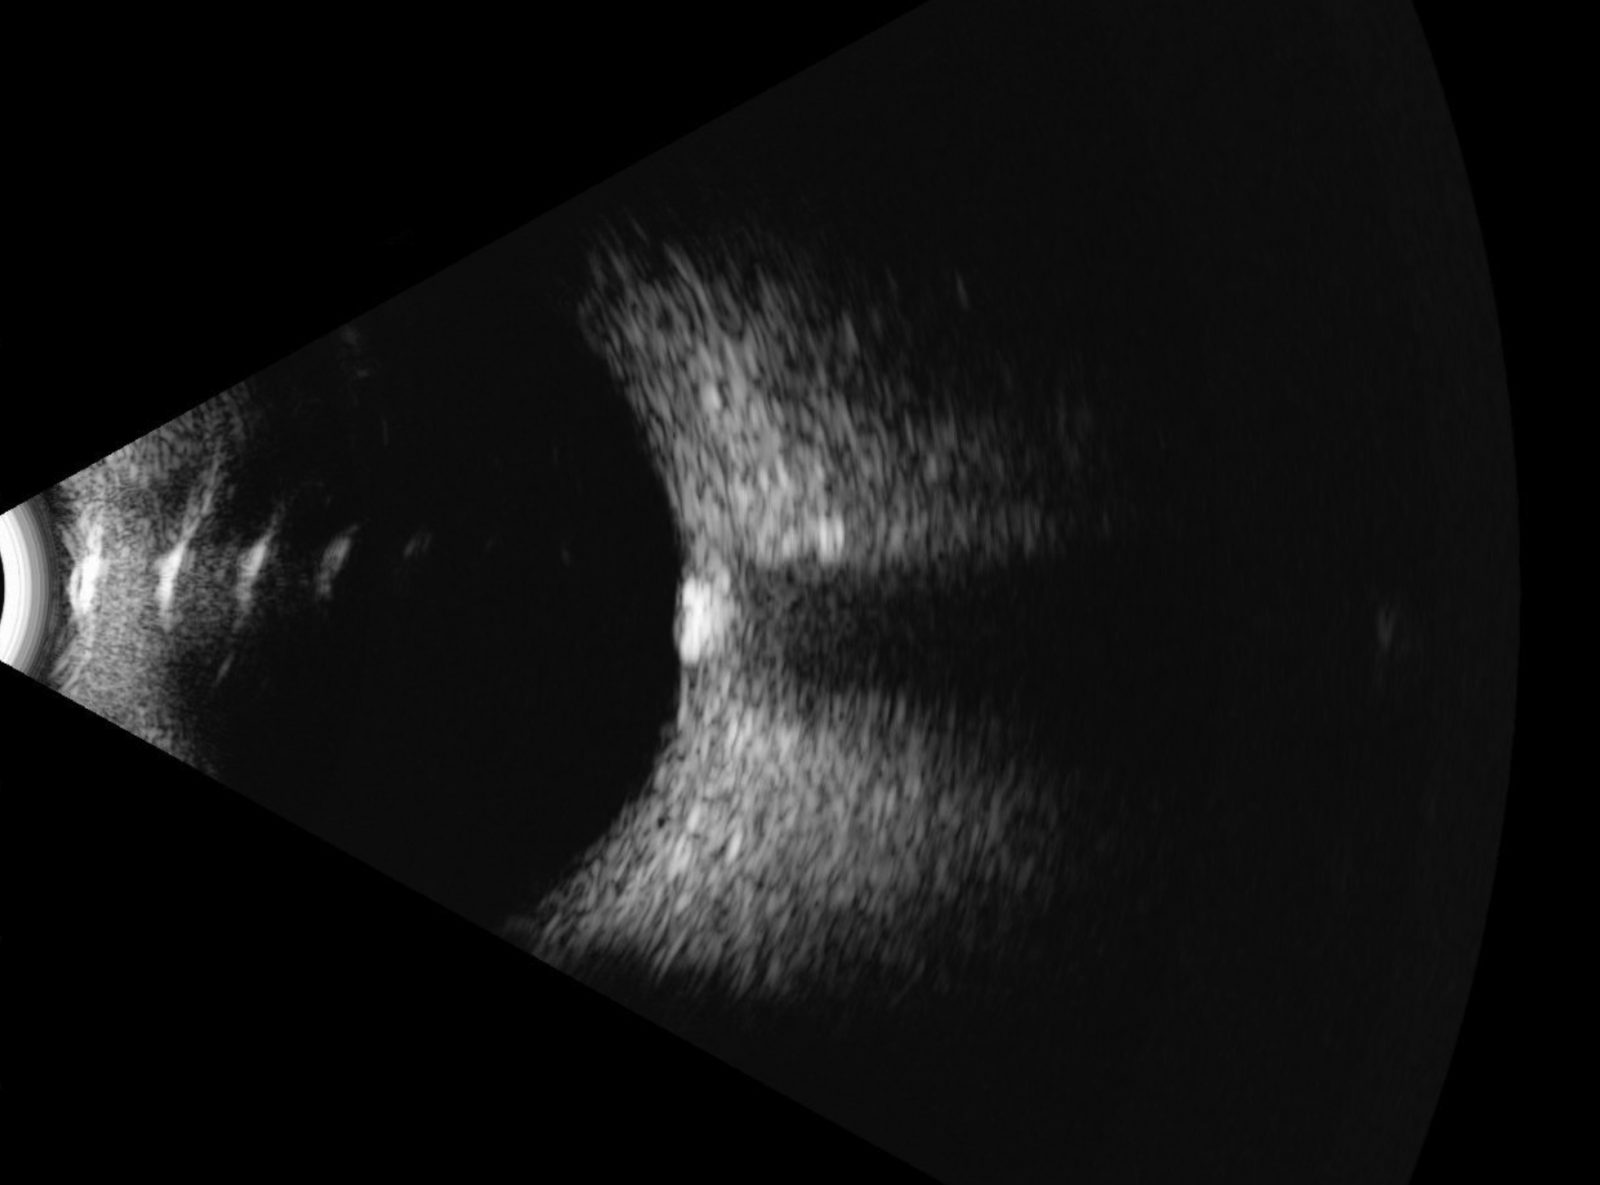 B-scan of the eye